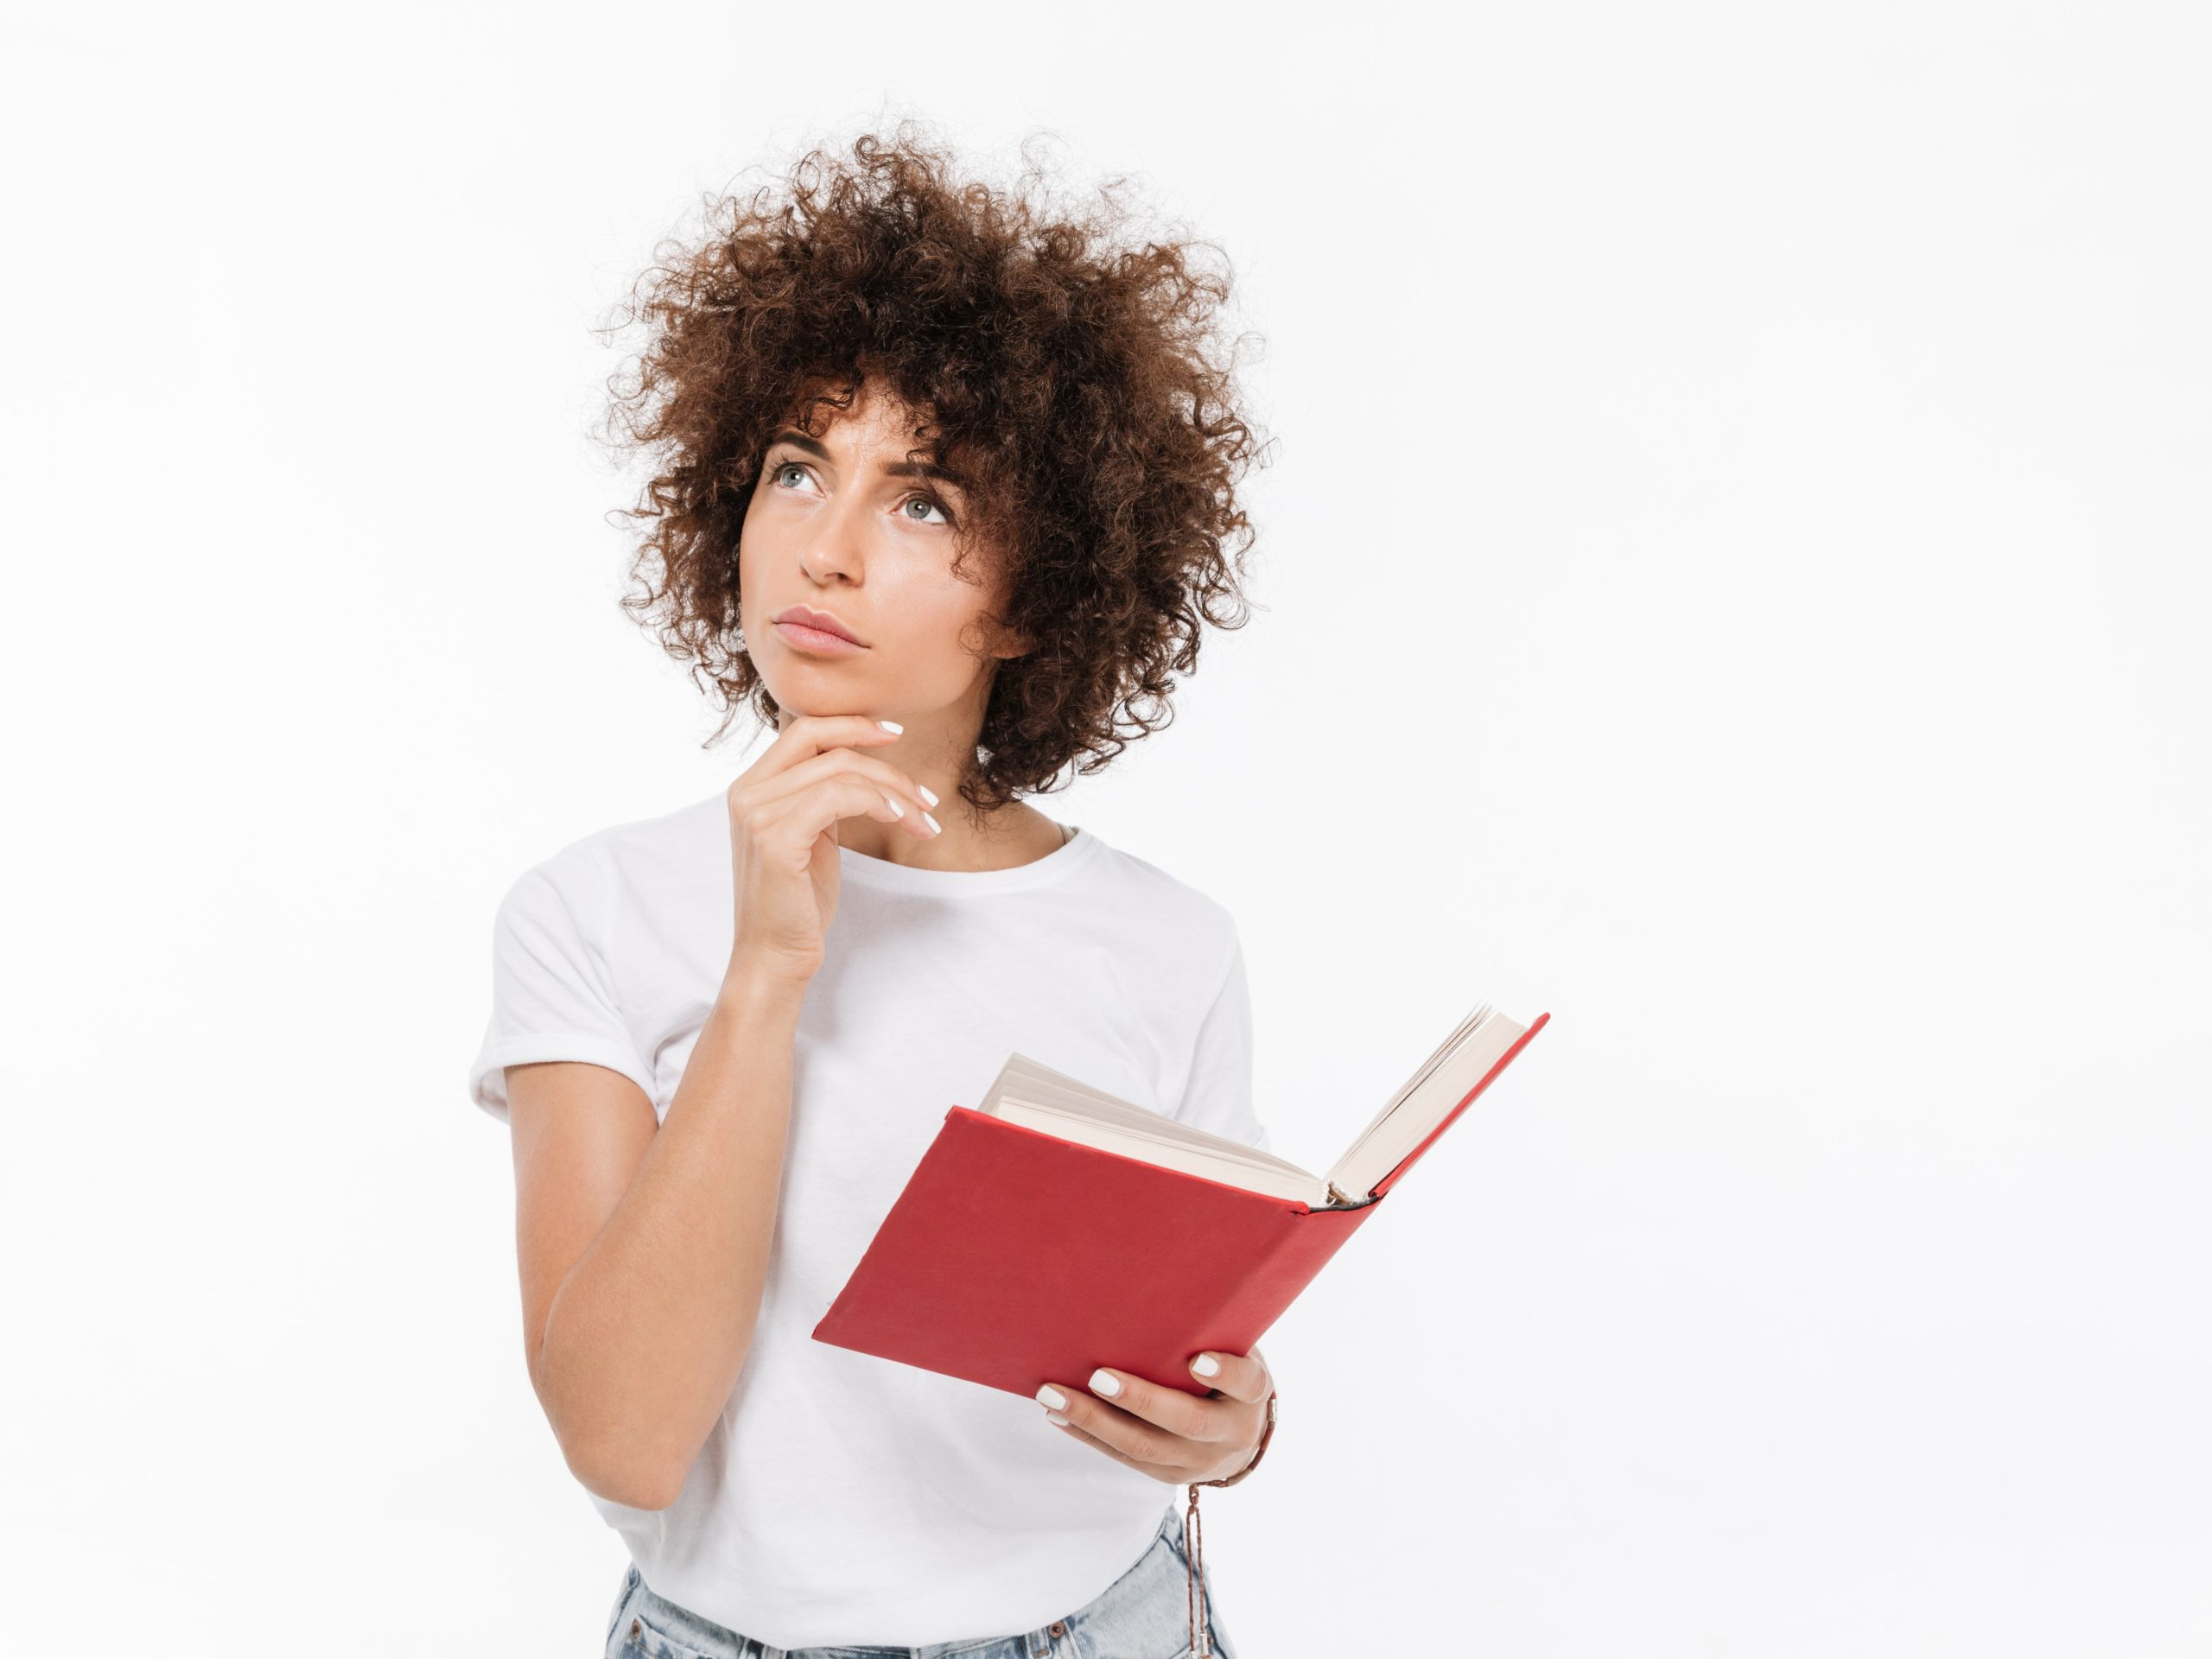 Pensive young woman holding book and looking away